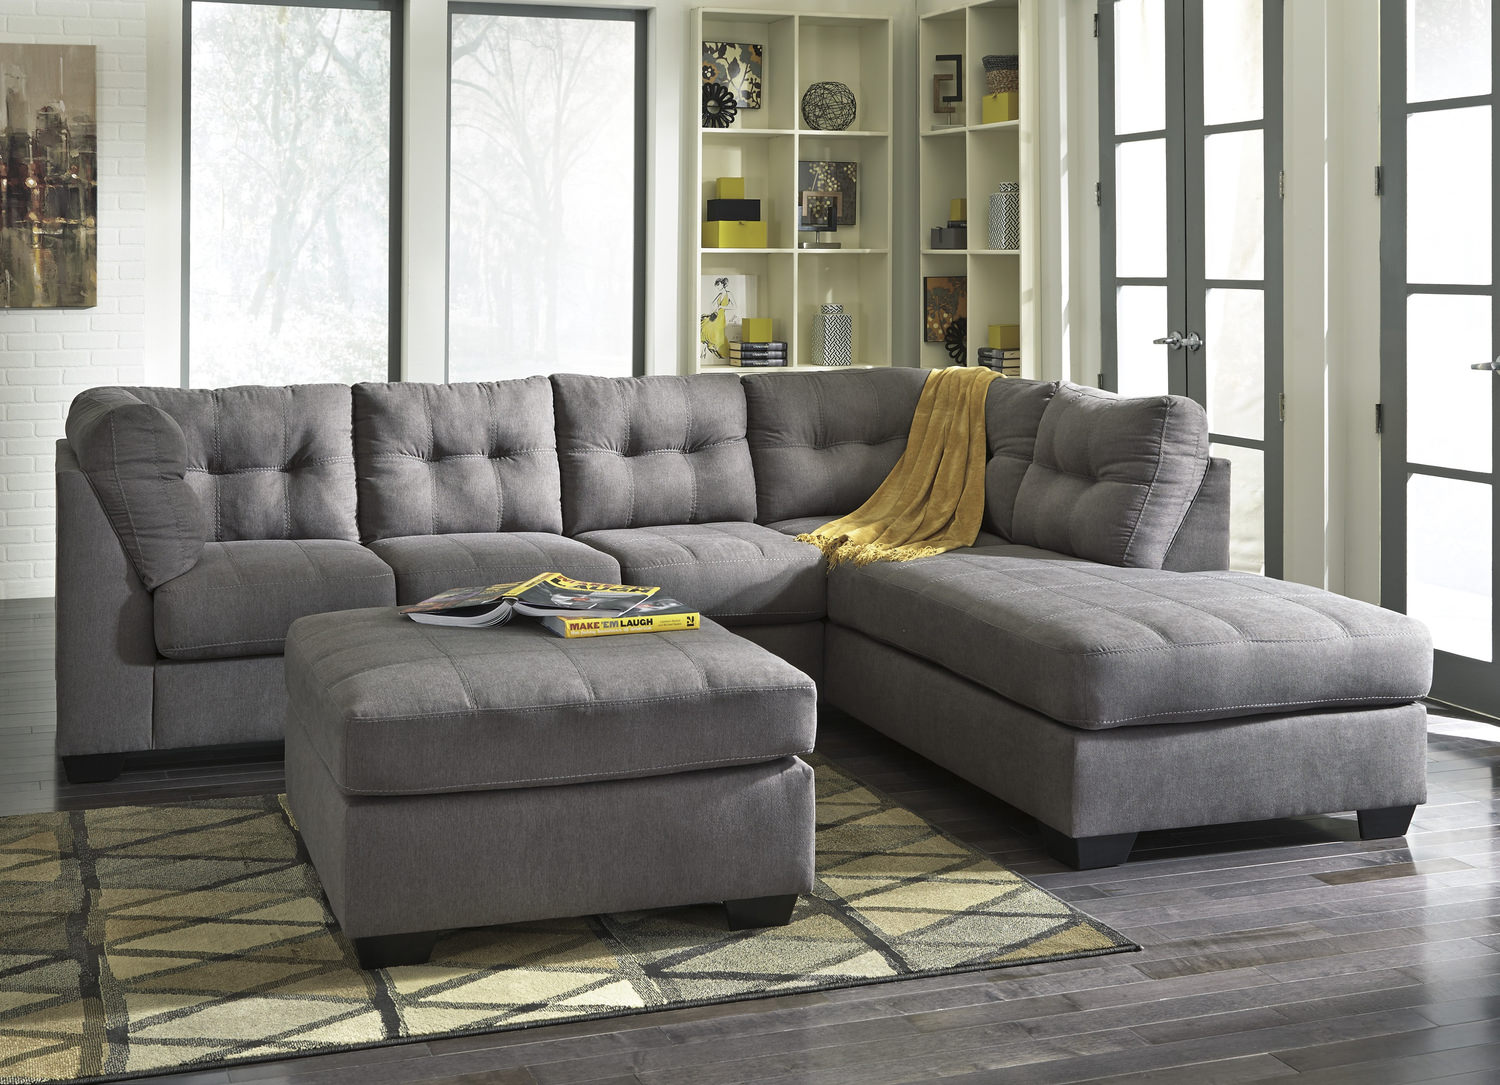 Gray Corner Sofas U2013 Lead You To Trendy Fashionable World